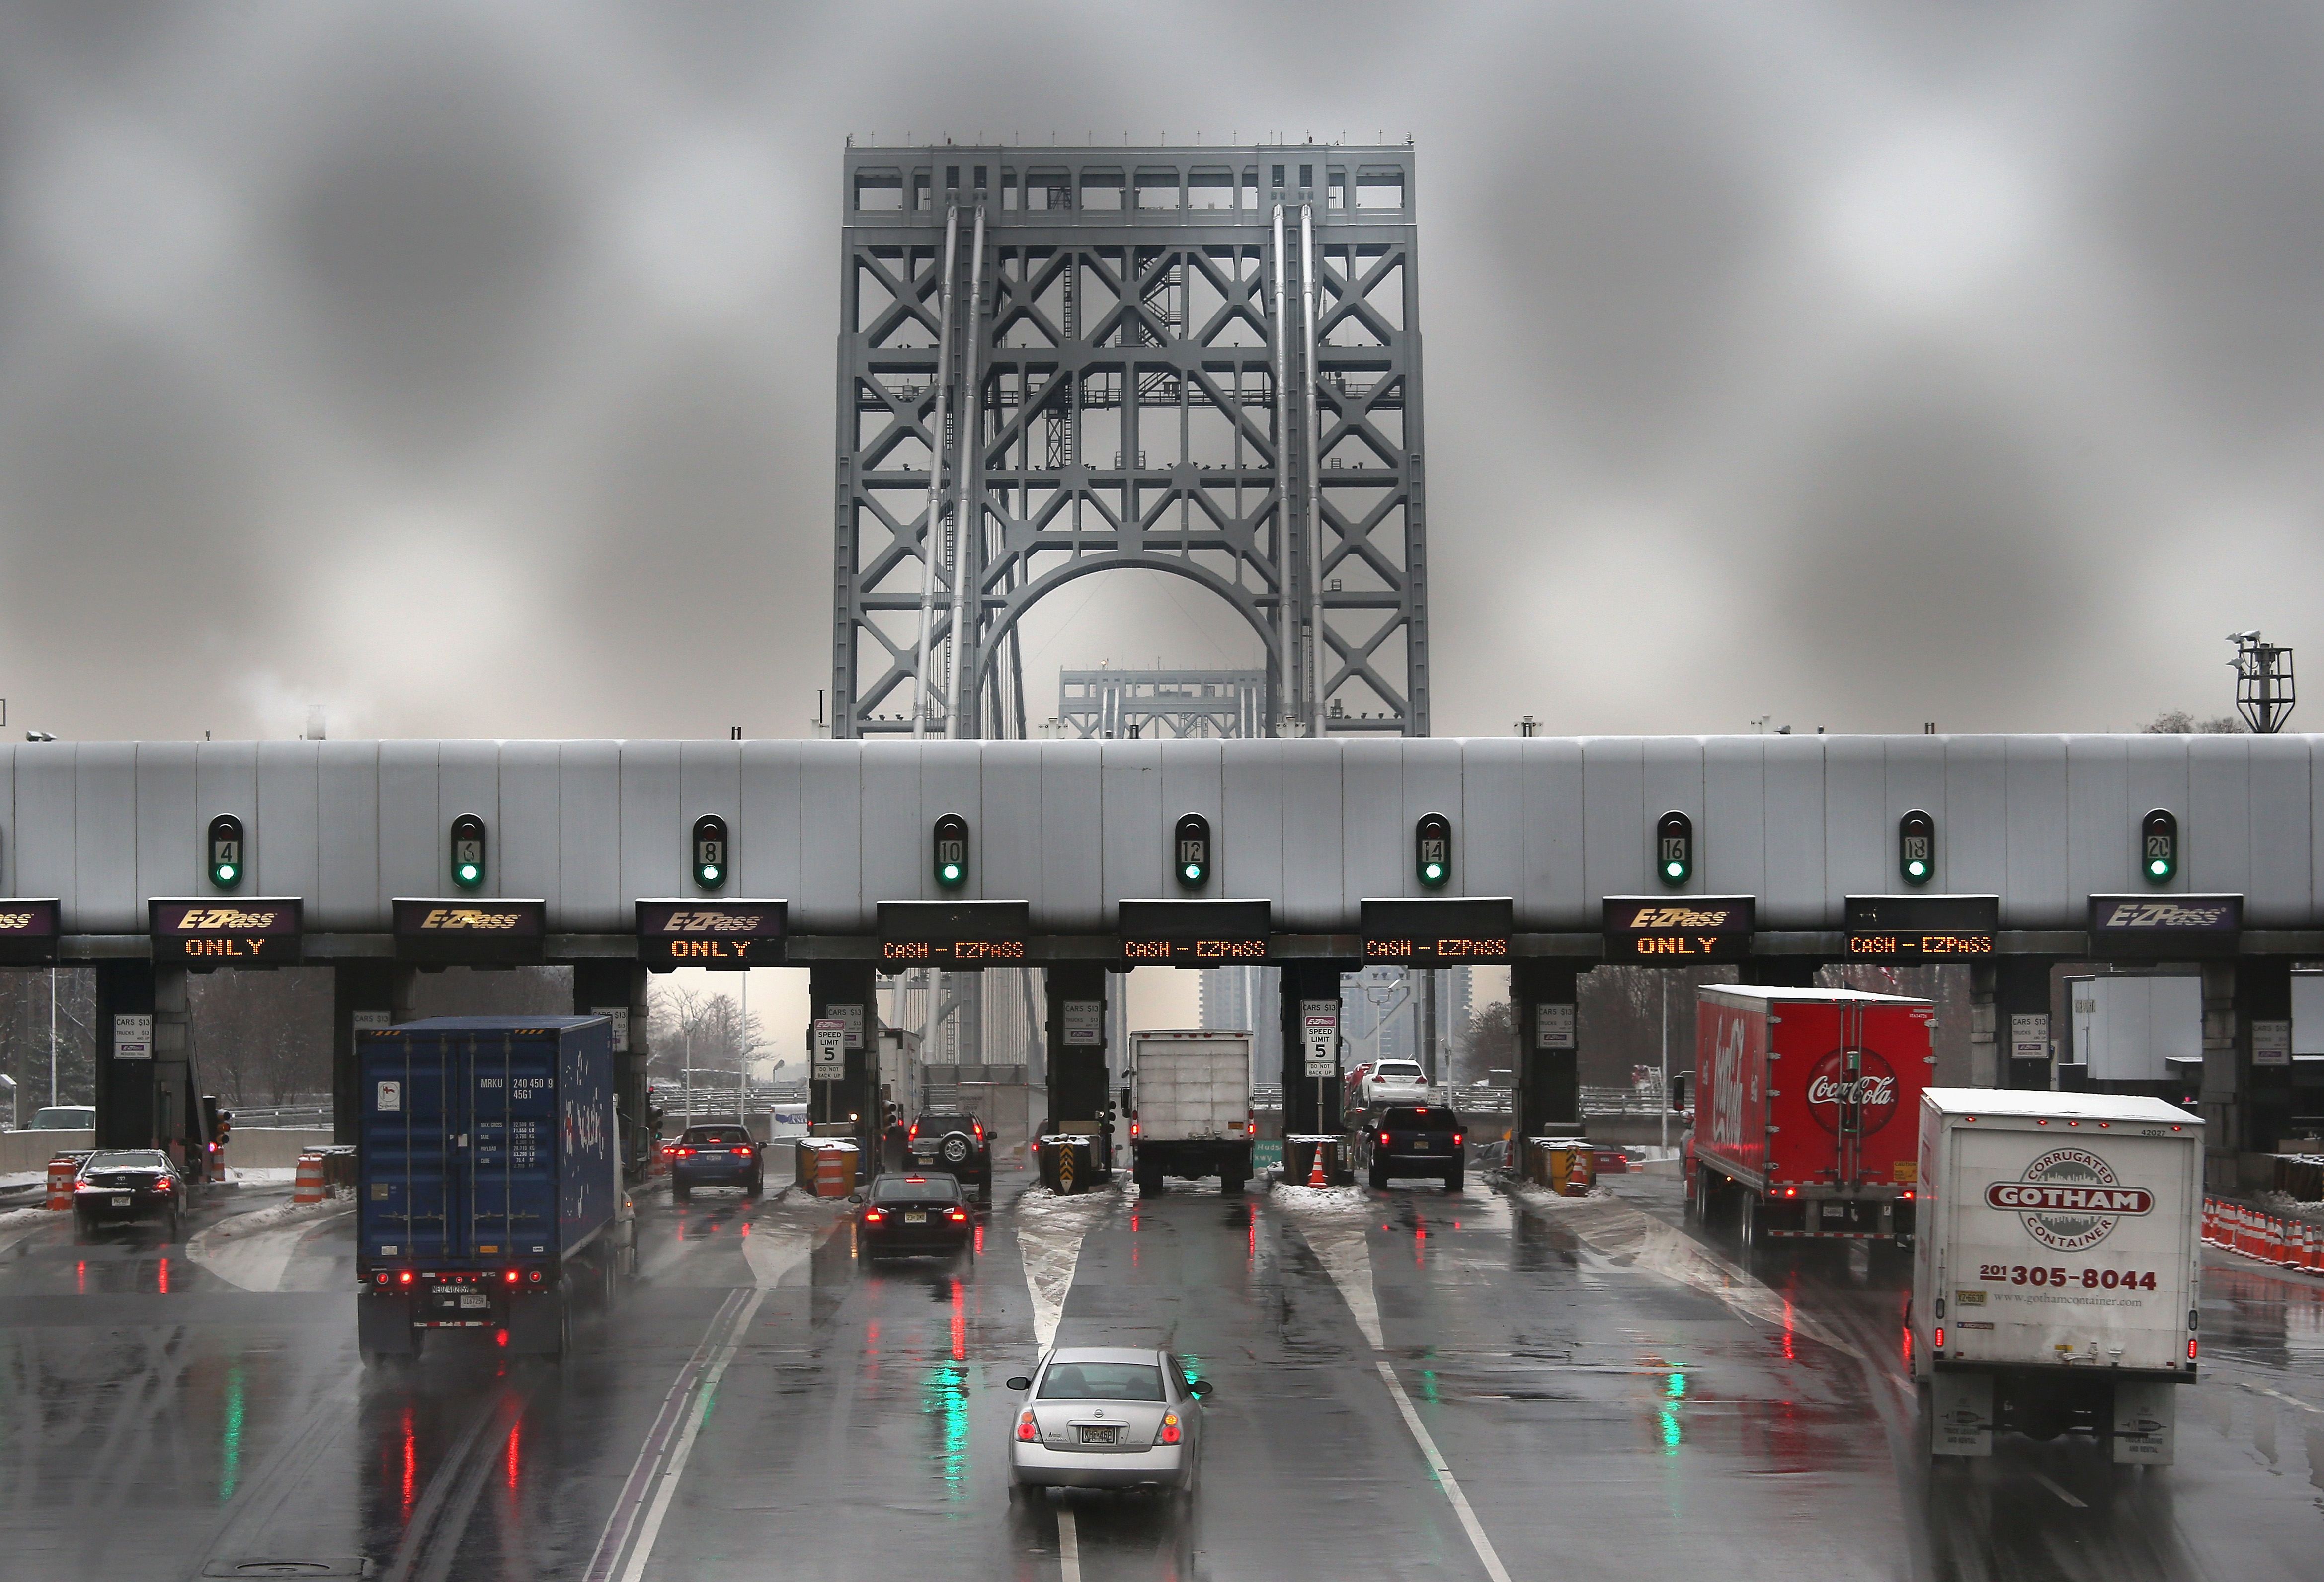 Vehicles slow for tolls before crossing the George Washington Bridge on Dec. 17, 2013 in Ft. Lee, New Jersey.